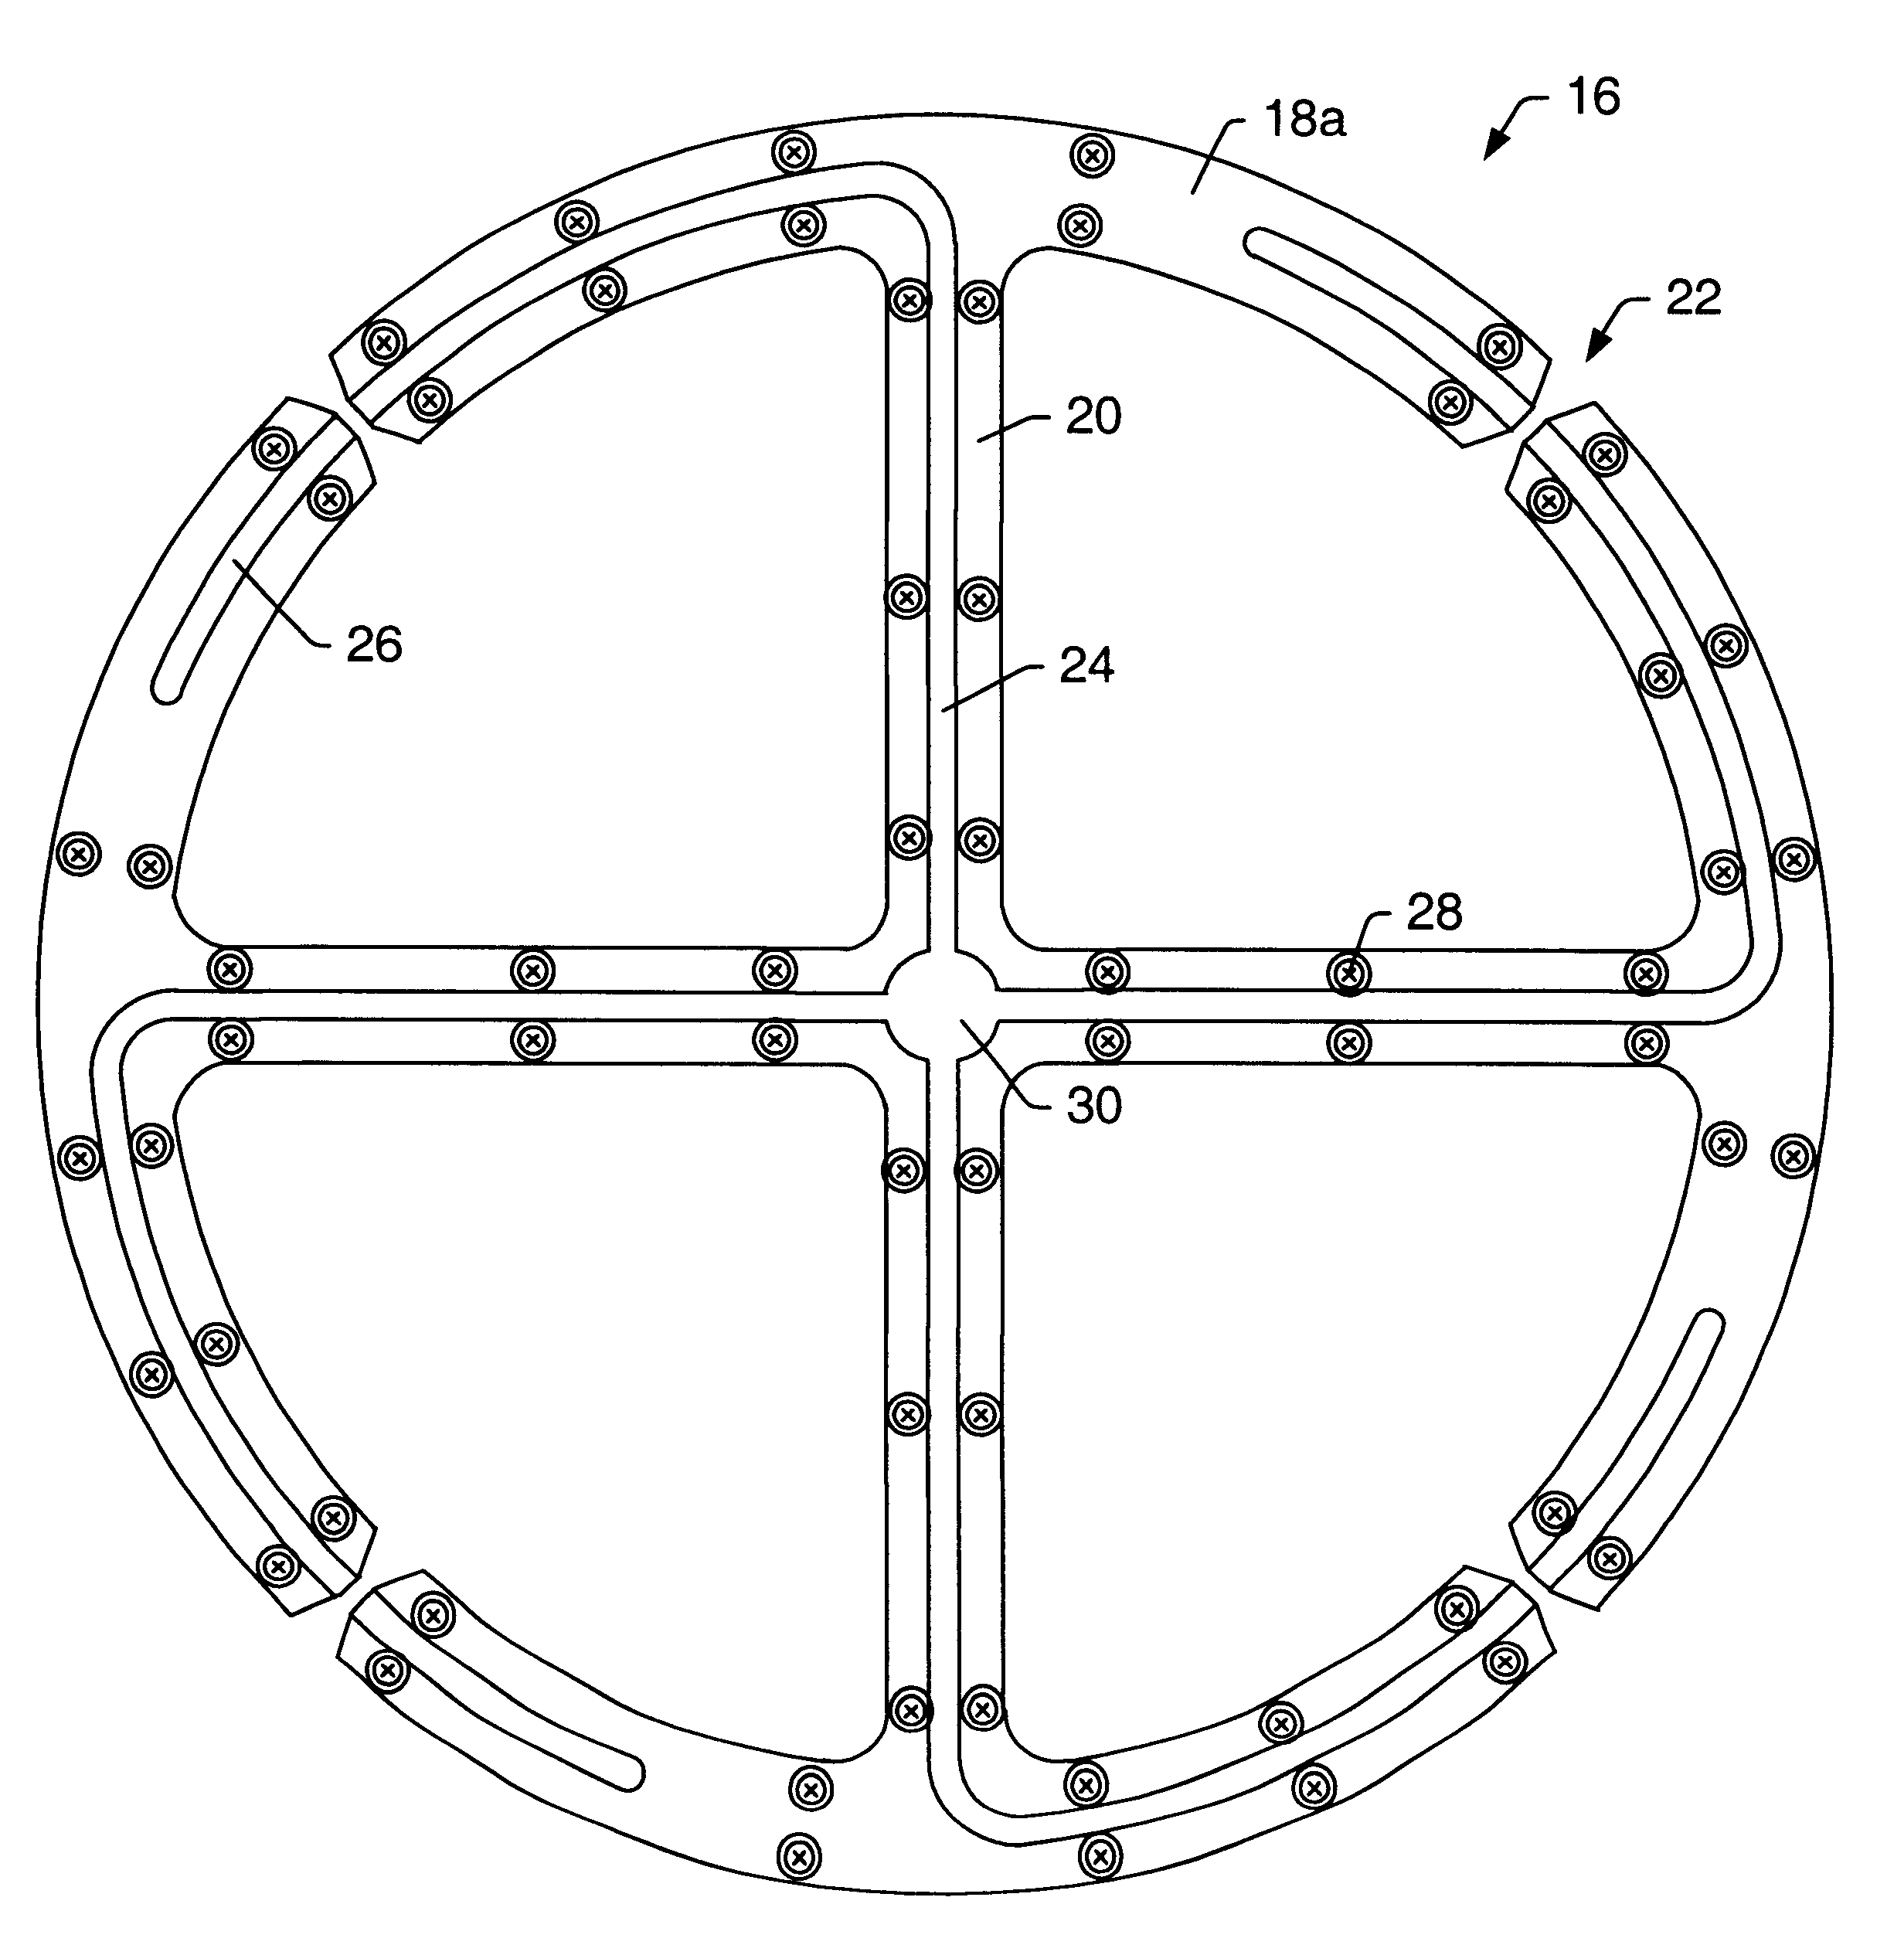 patent us6515632 - multiply-fed loop antenna